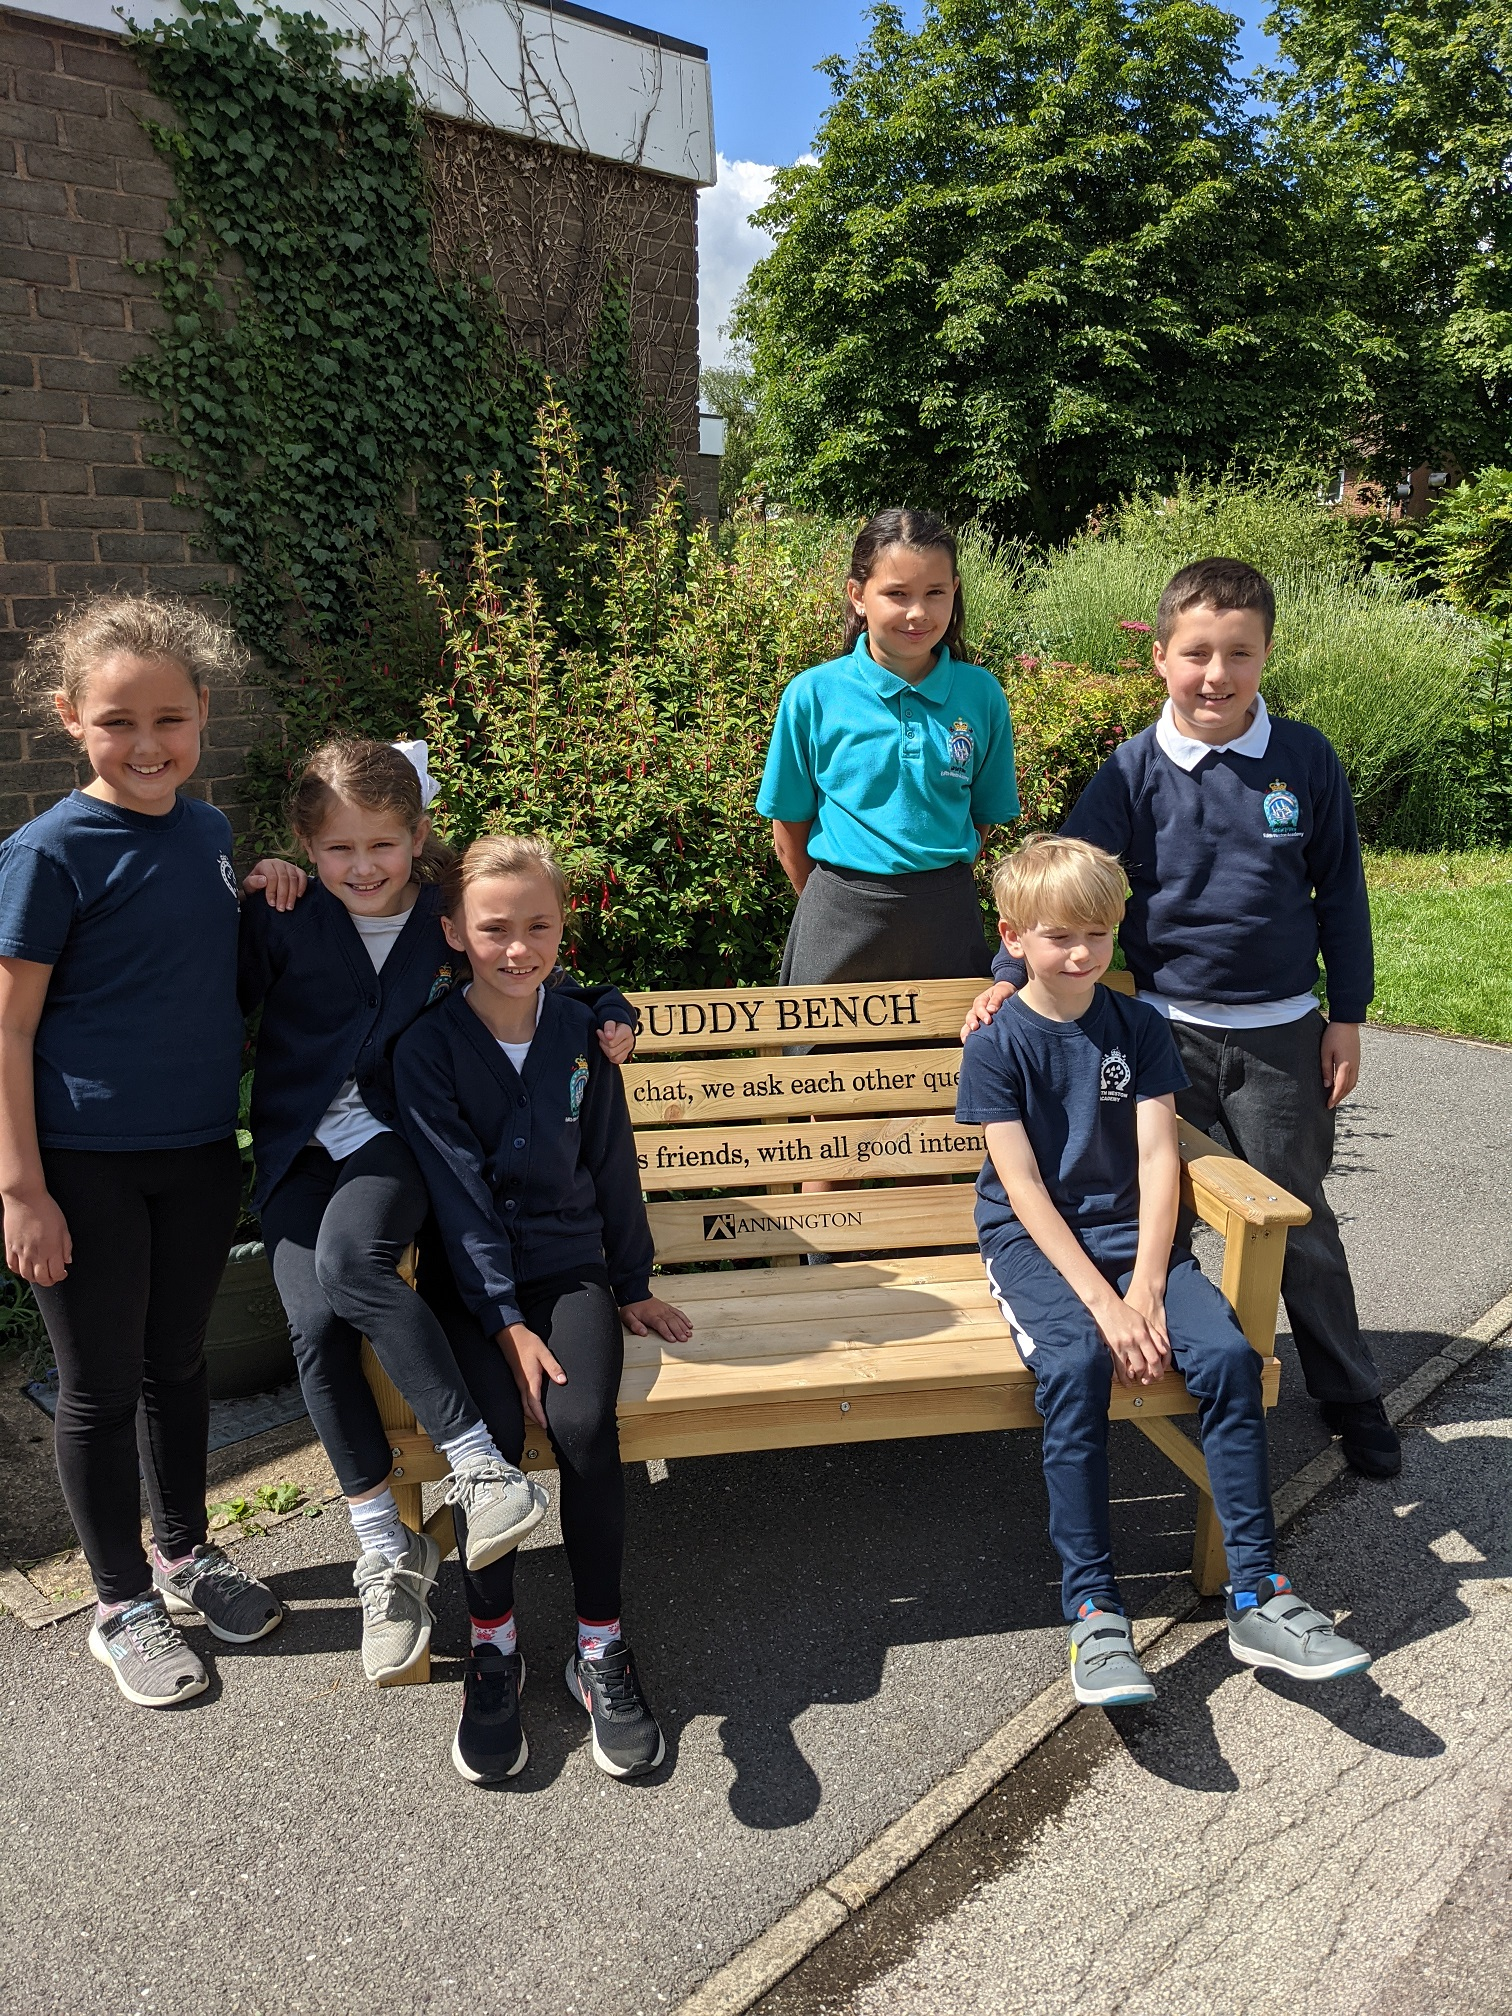 ANNINGTON SHARES GIFT OF FRIENDSHIP WITH EDITH WESTON SCHOOL